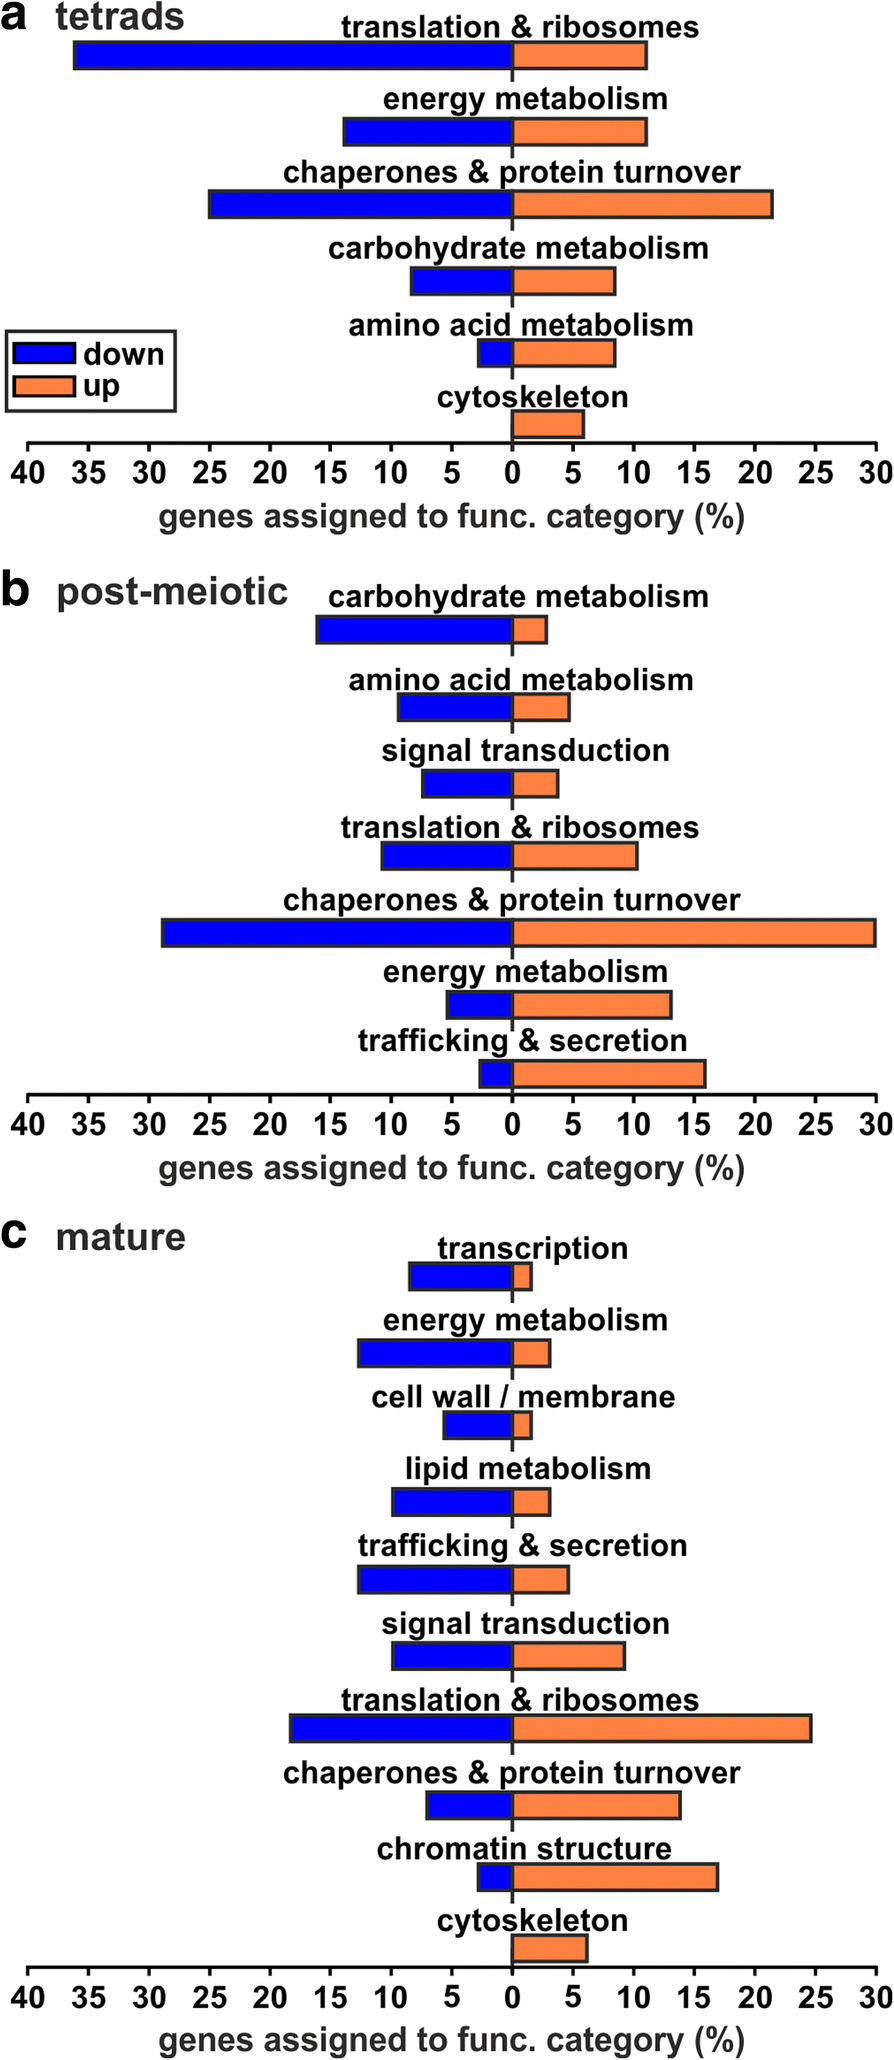 The coupling of transcriptome and proteome adaptation during